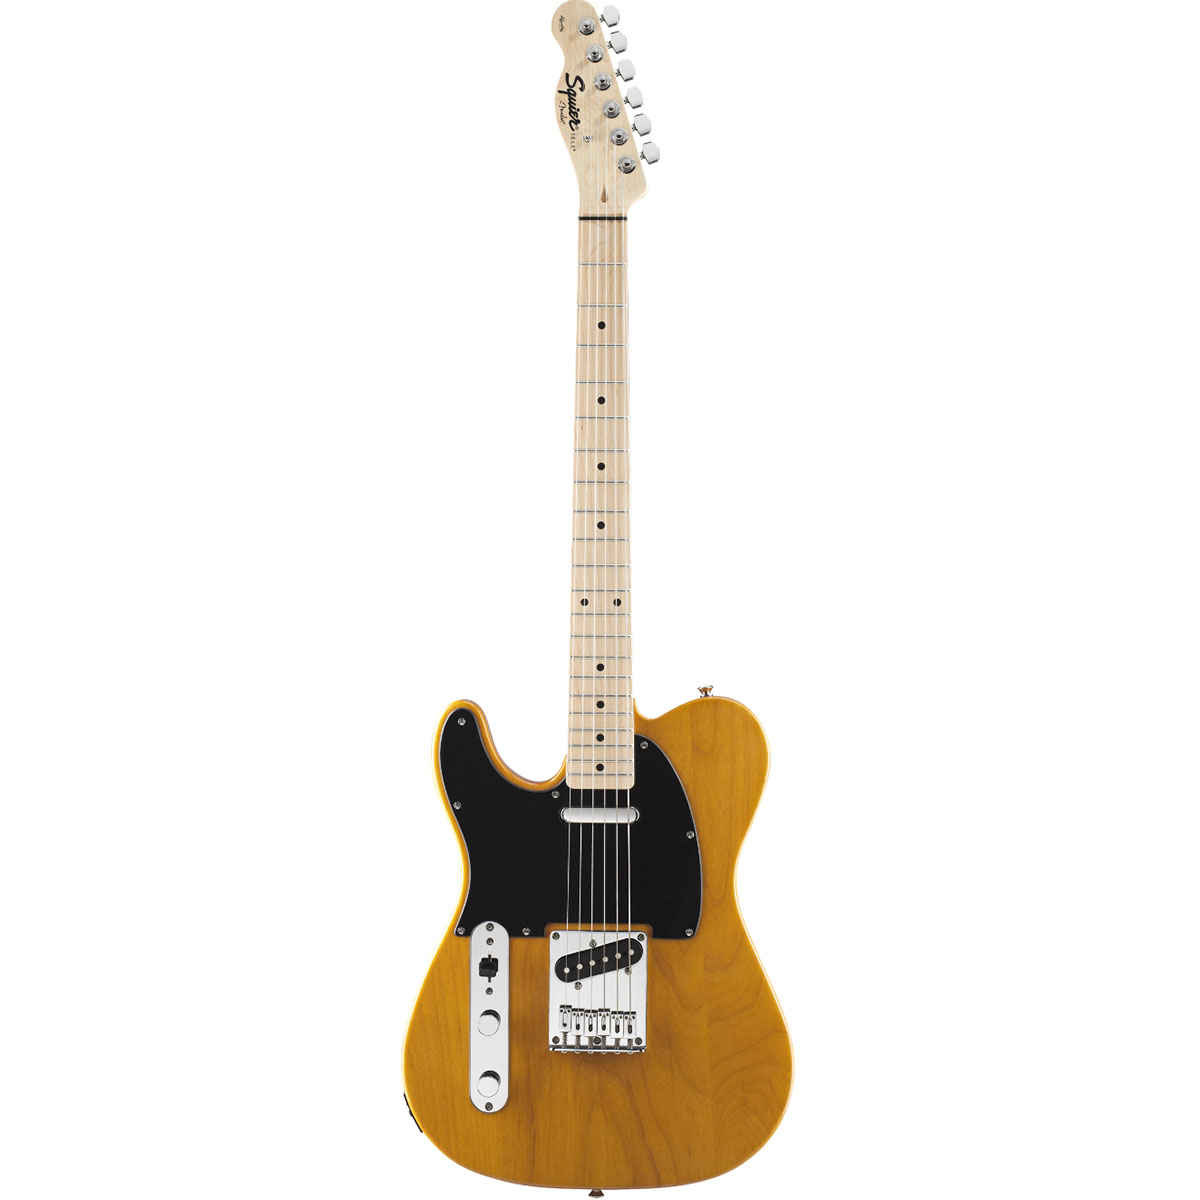 Squier - Telecaster gaucher Butter blond